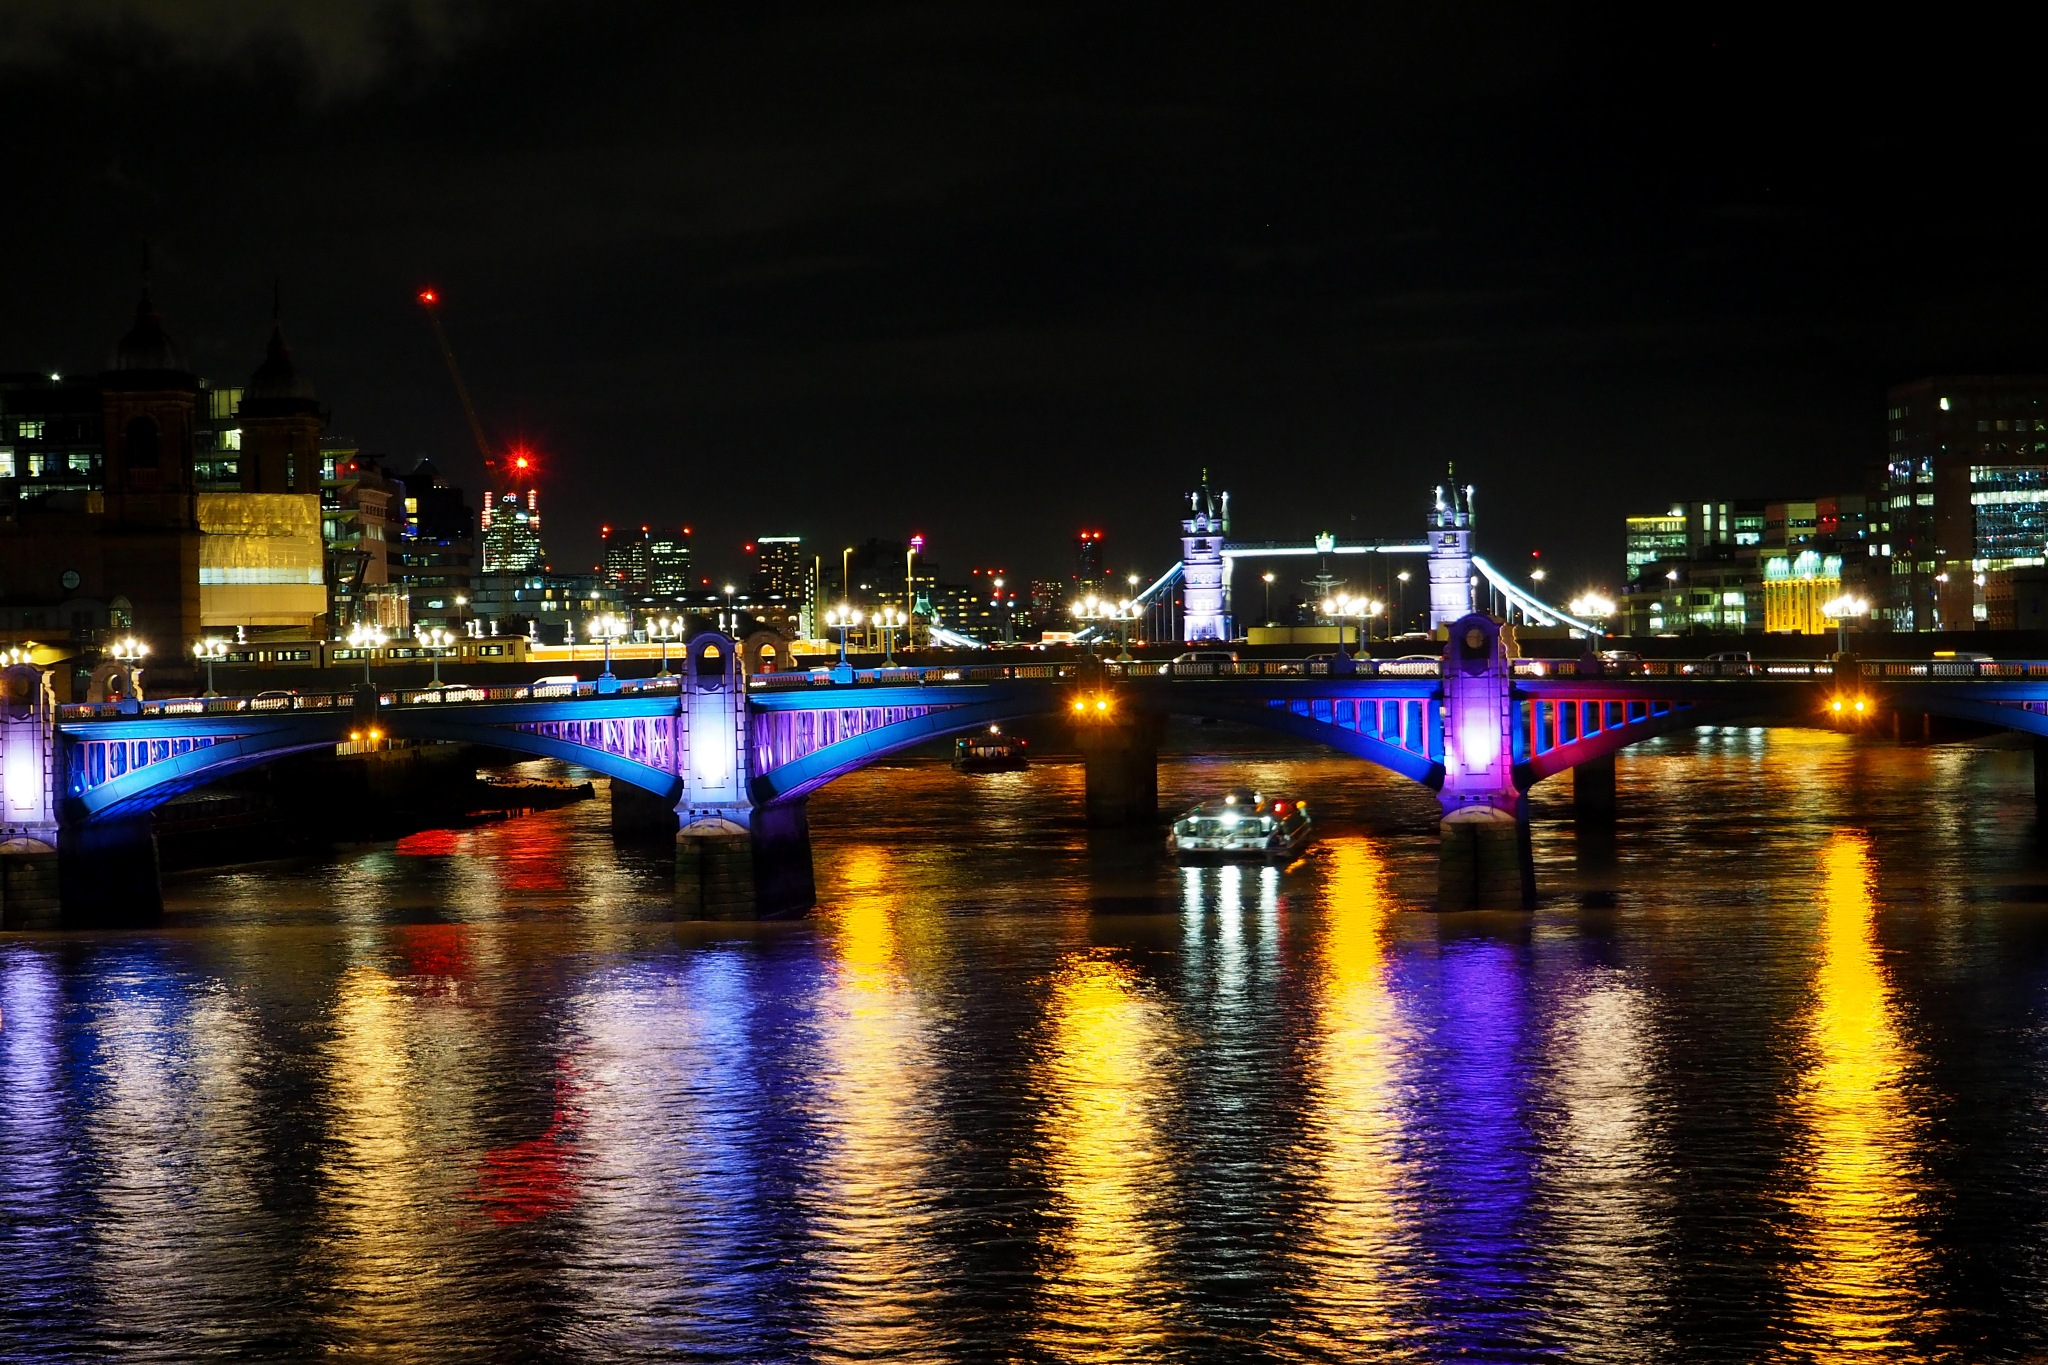 Tower bridge in the distance. by jeremy1960